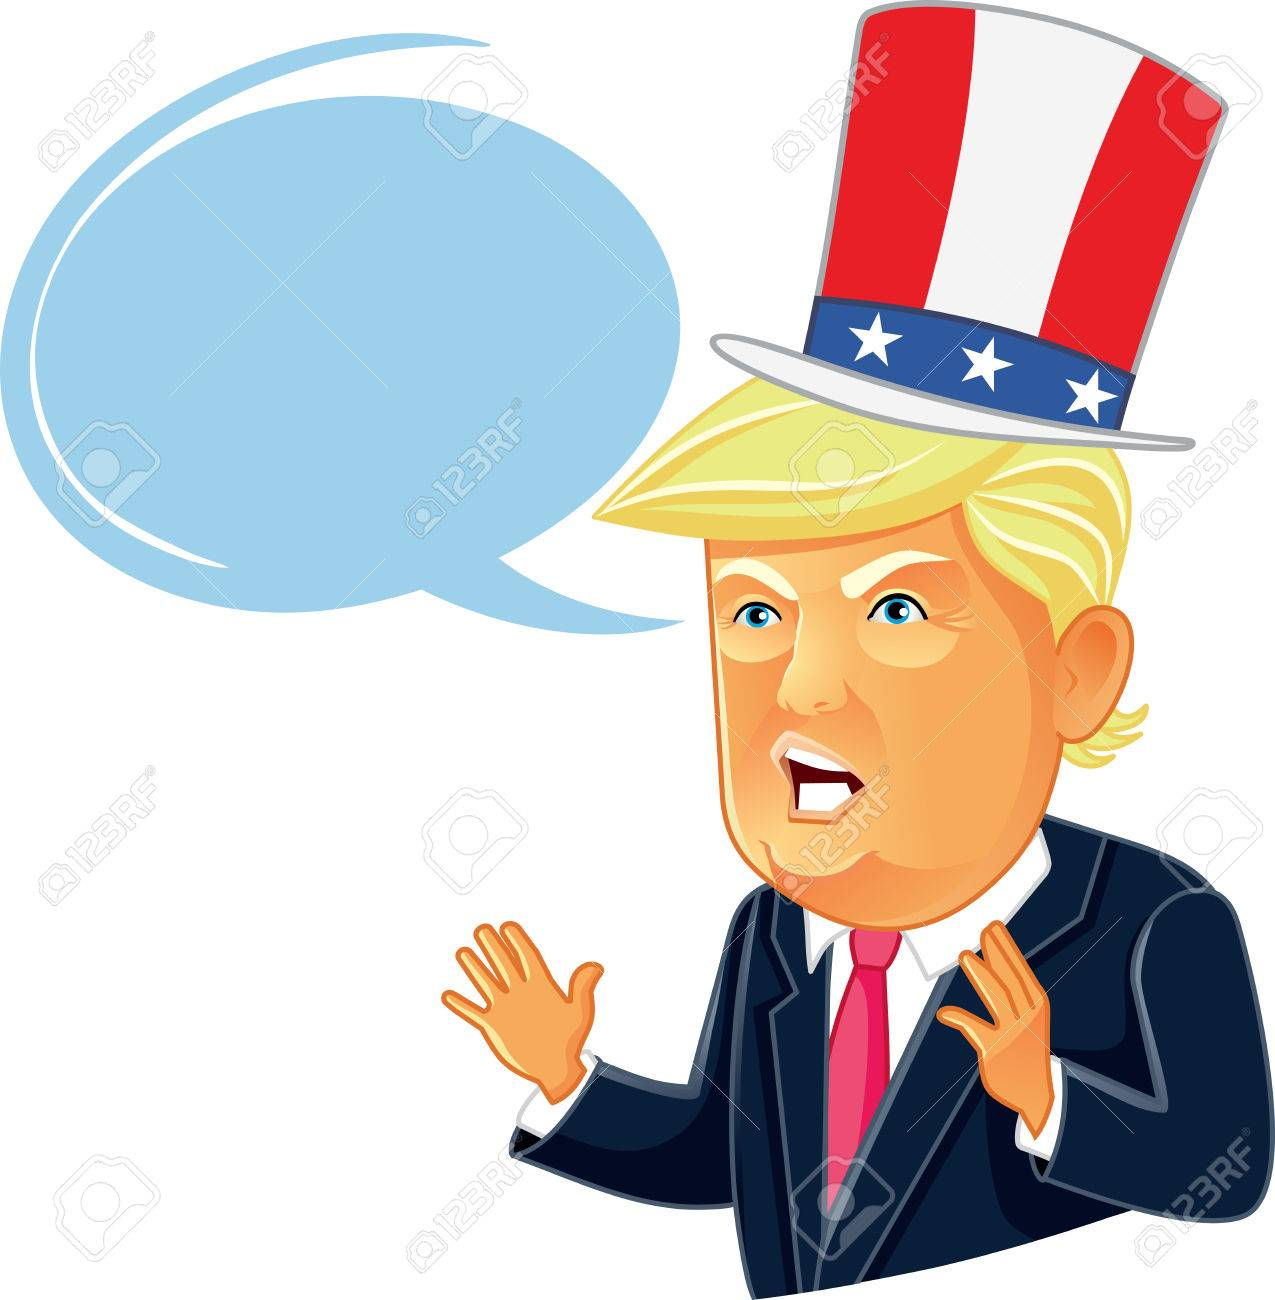 Image of: Showtime Editorial Caricature Donald Trump Cartoon With Speech Bubble Stock Photo 63096981 Shutterstock Editorial Caricature Donald Trump Cartoon With Speech Bubble Stock